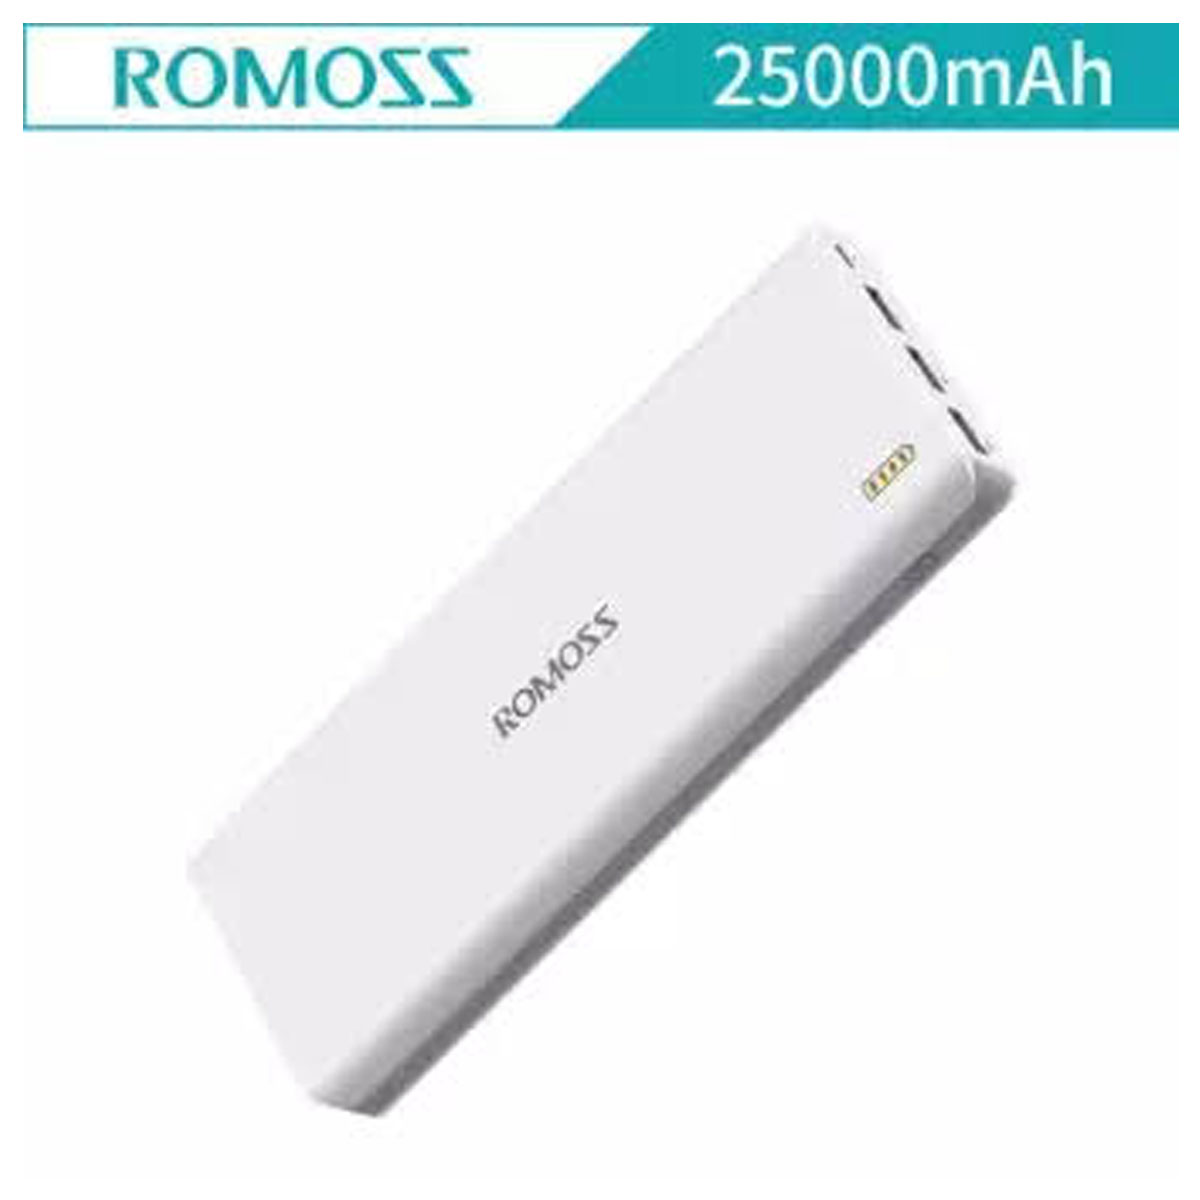 Romoss Sense 9  25000MAH Power Bank for Smart Phones Gallery Image 1